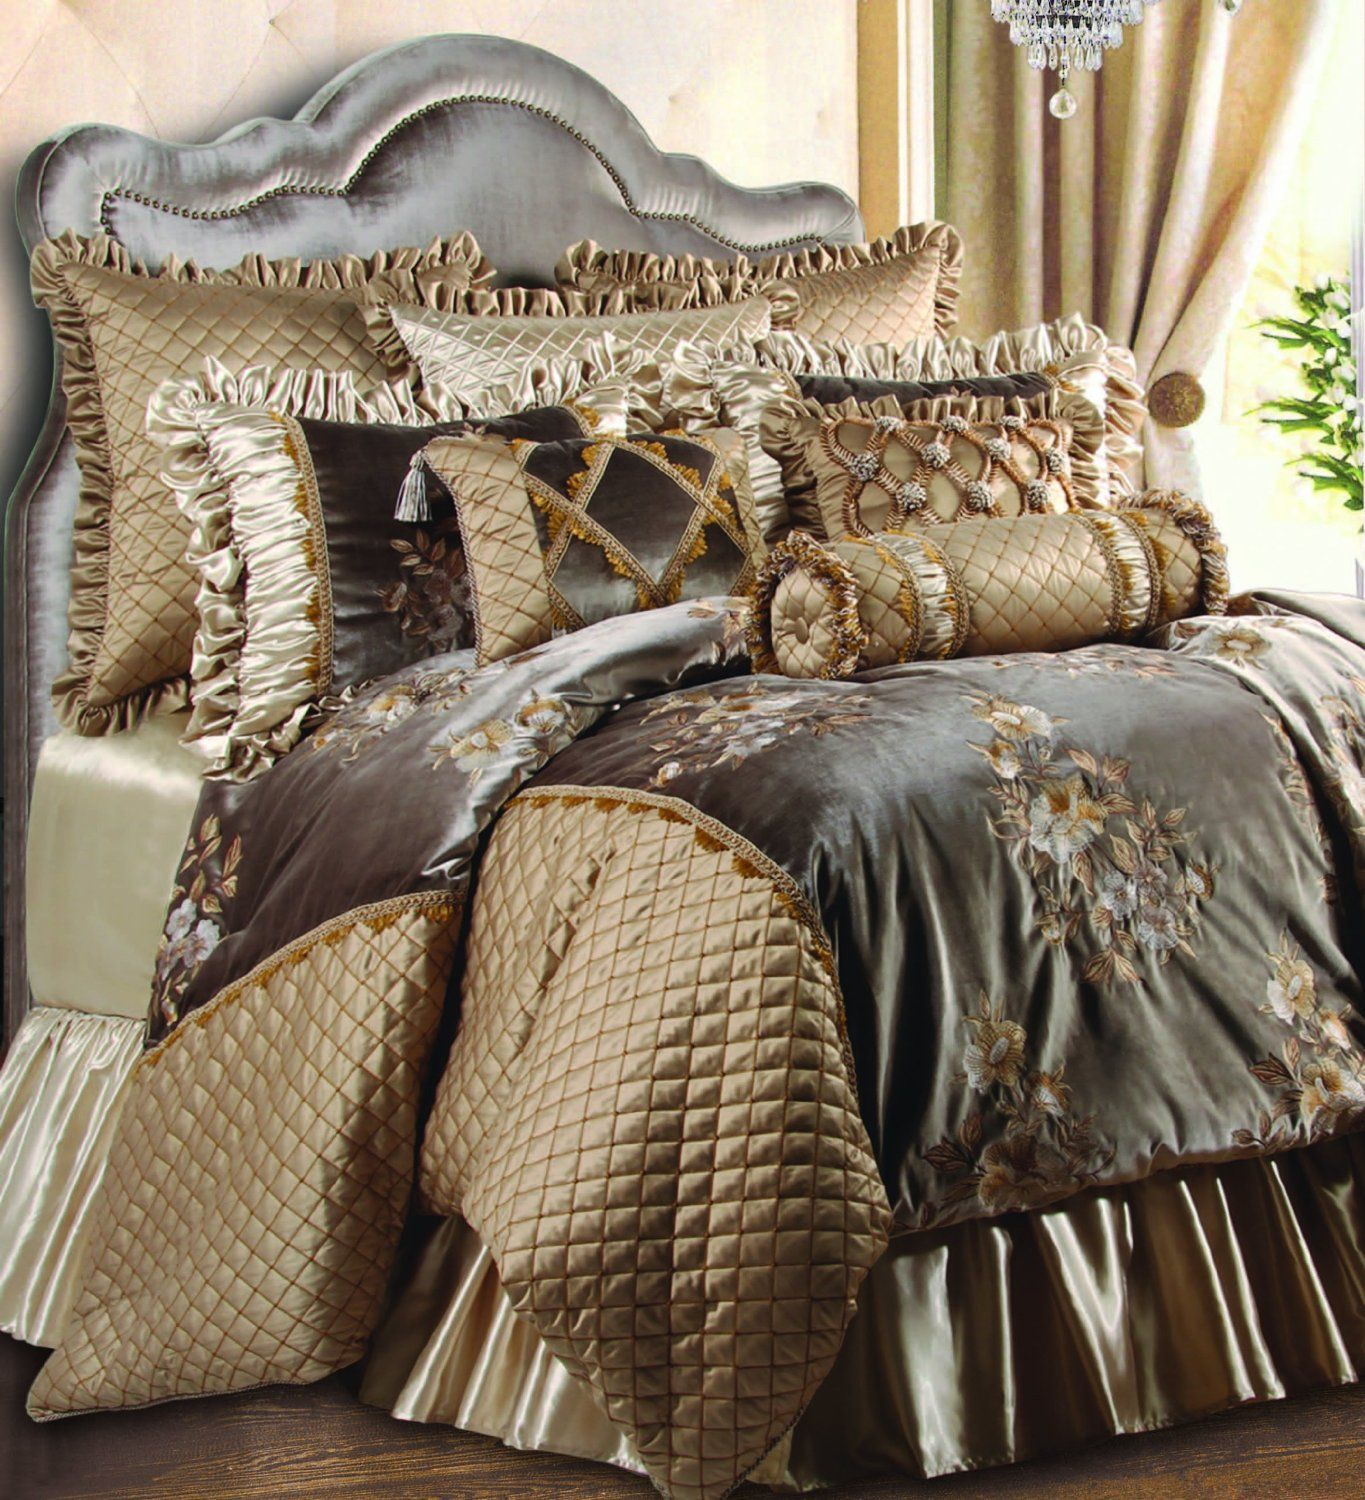 Victorian Bedding Ensembles Opulence And Luxury Fit For A Queen